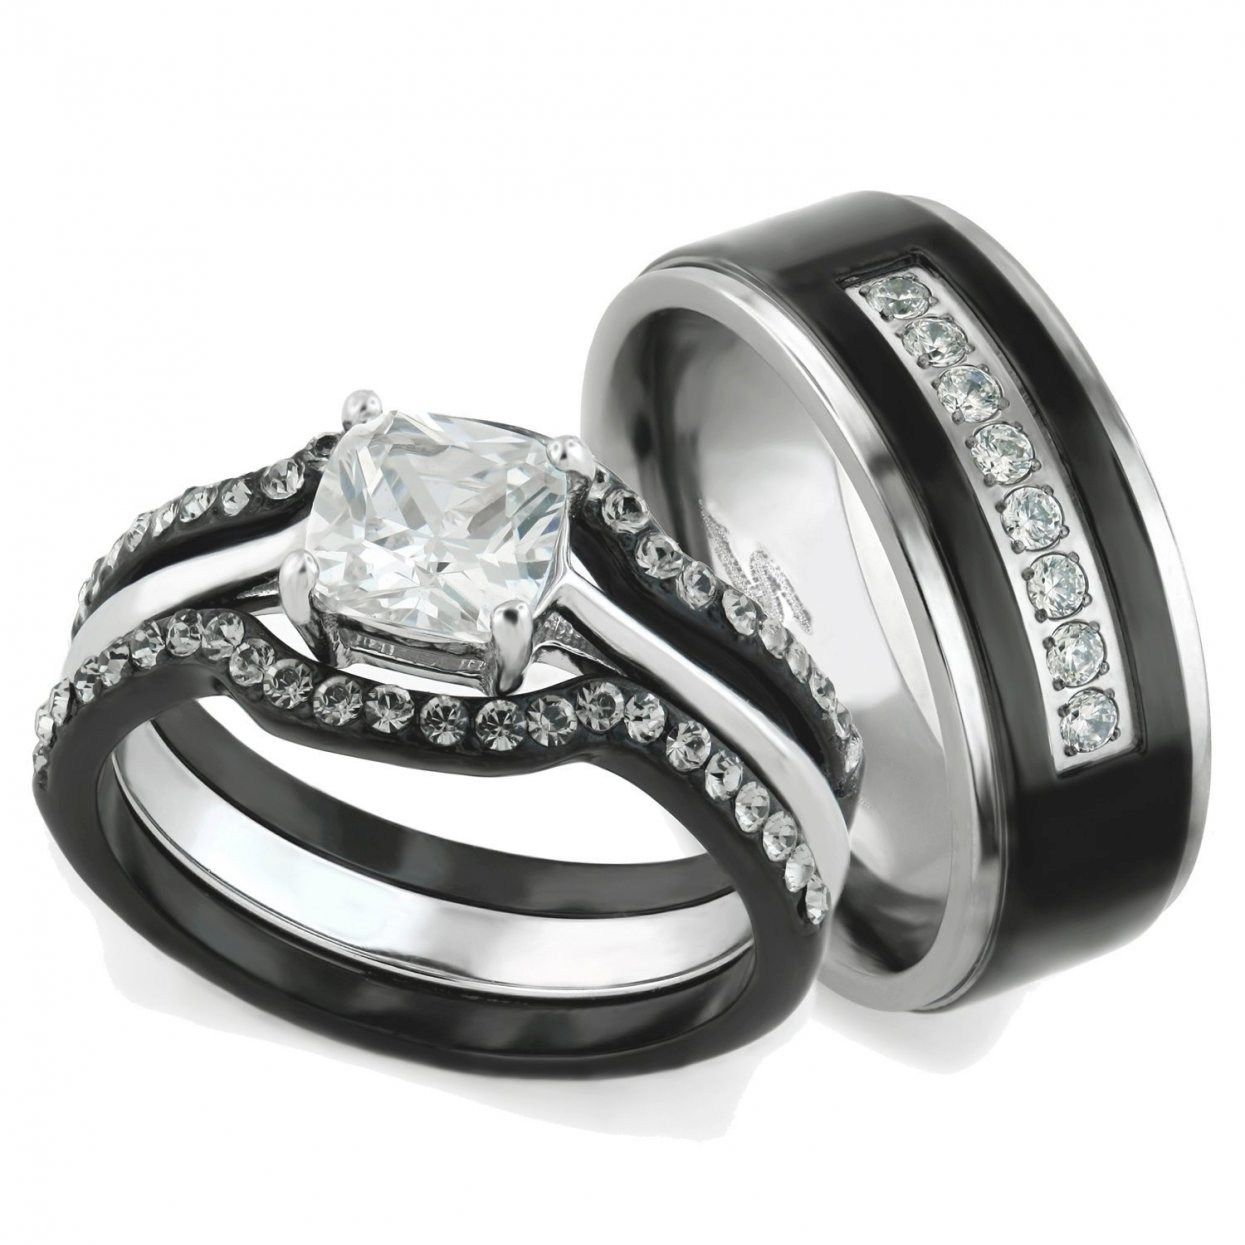 Zales Wedding Sets For Him And Her Mens Wedding Rings Wedding